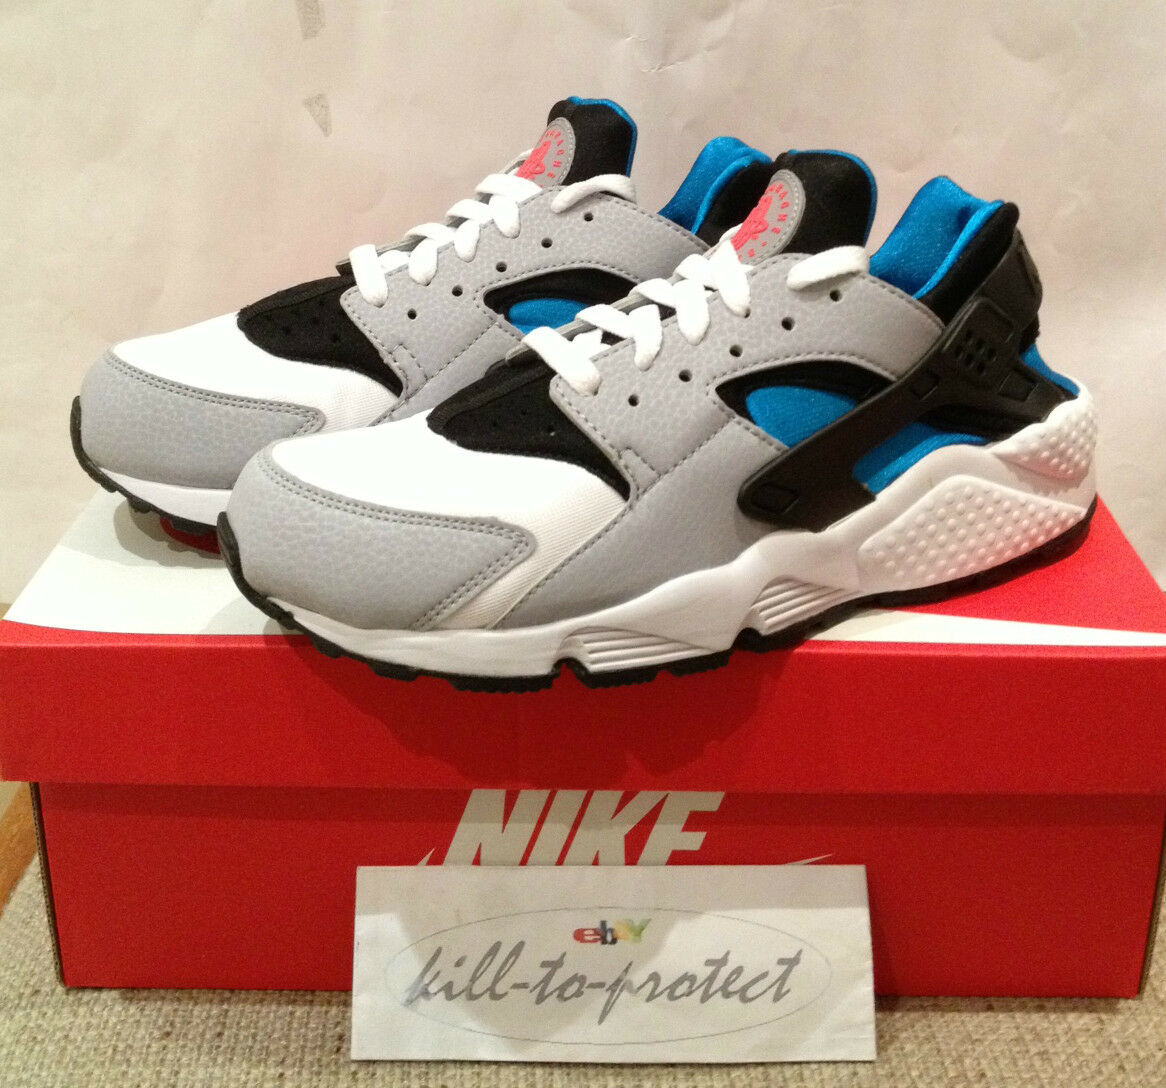 NIKE AIR HUARACHE LE Sz US Grey bluee Silver 318429-140 2013